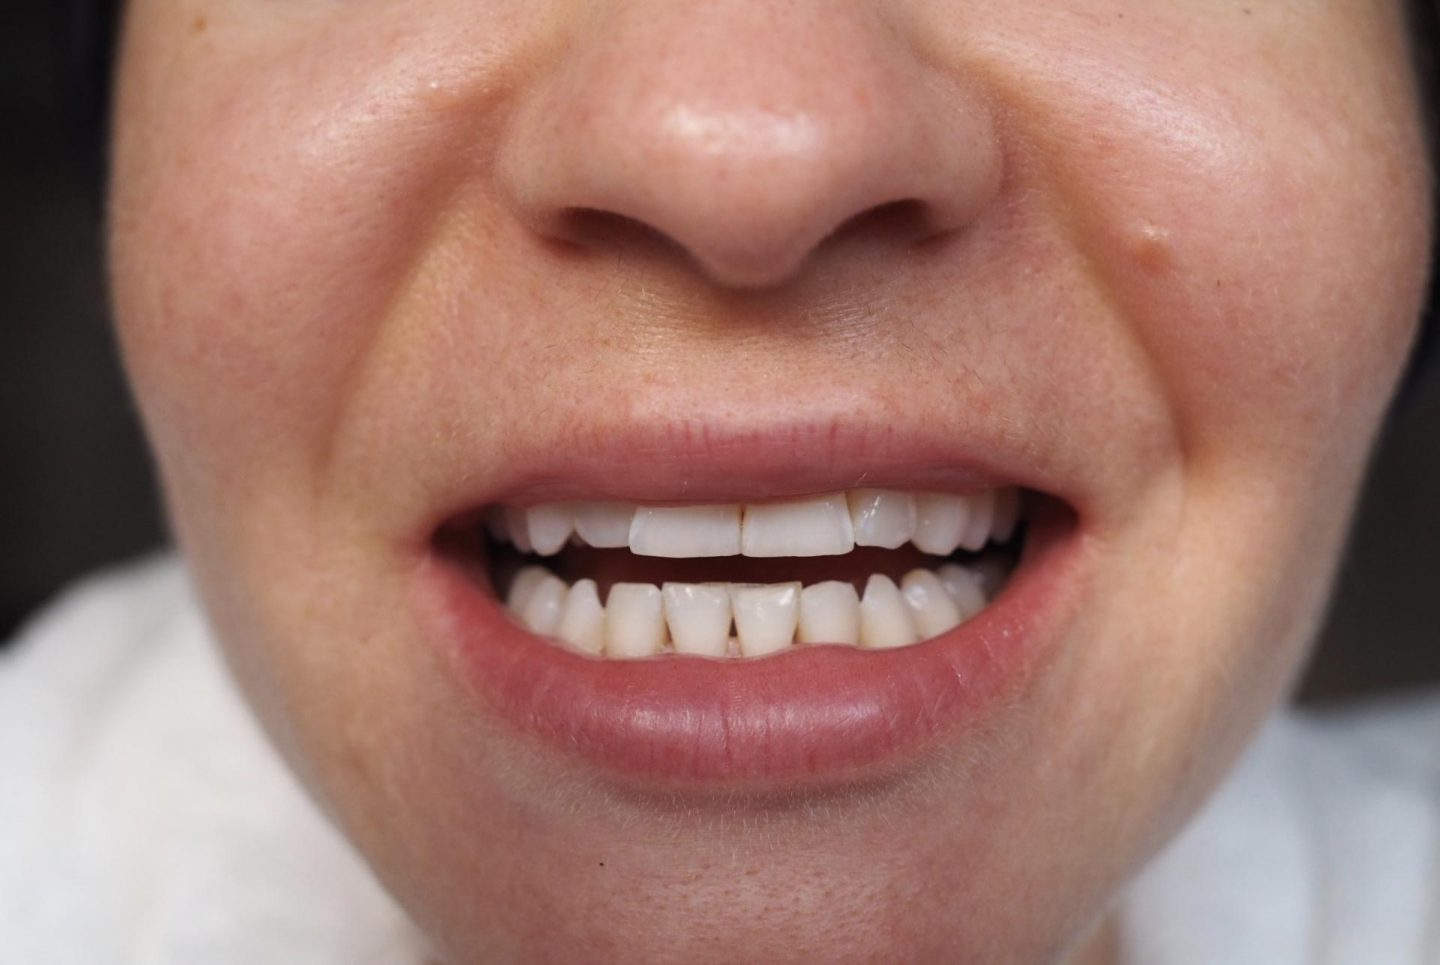 before and after teeth whitening at home